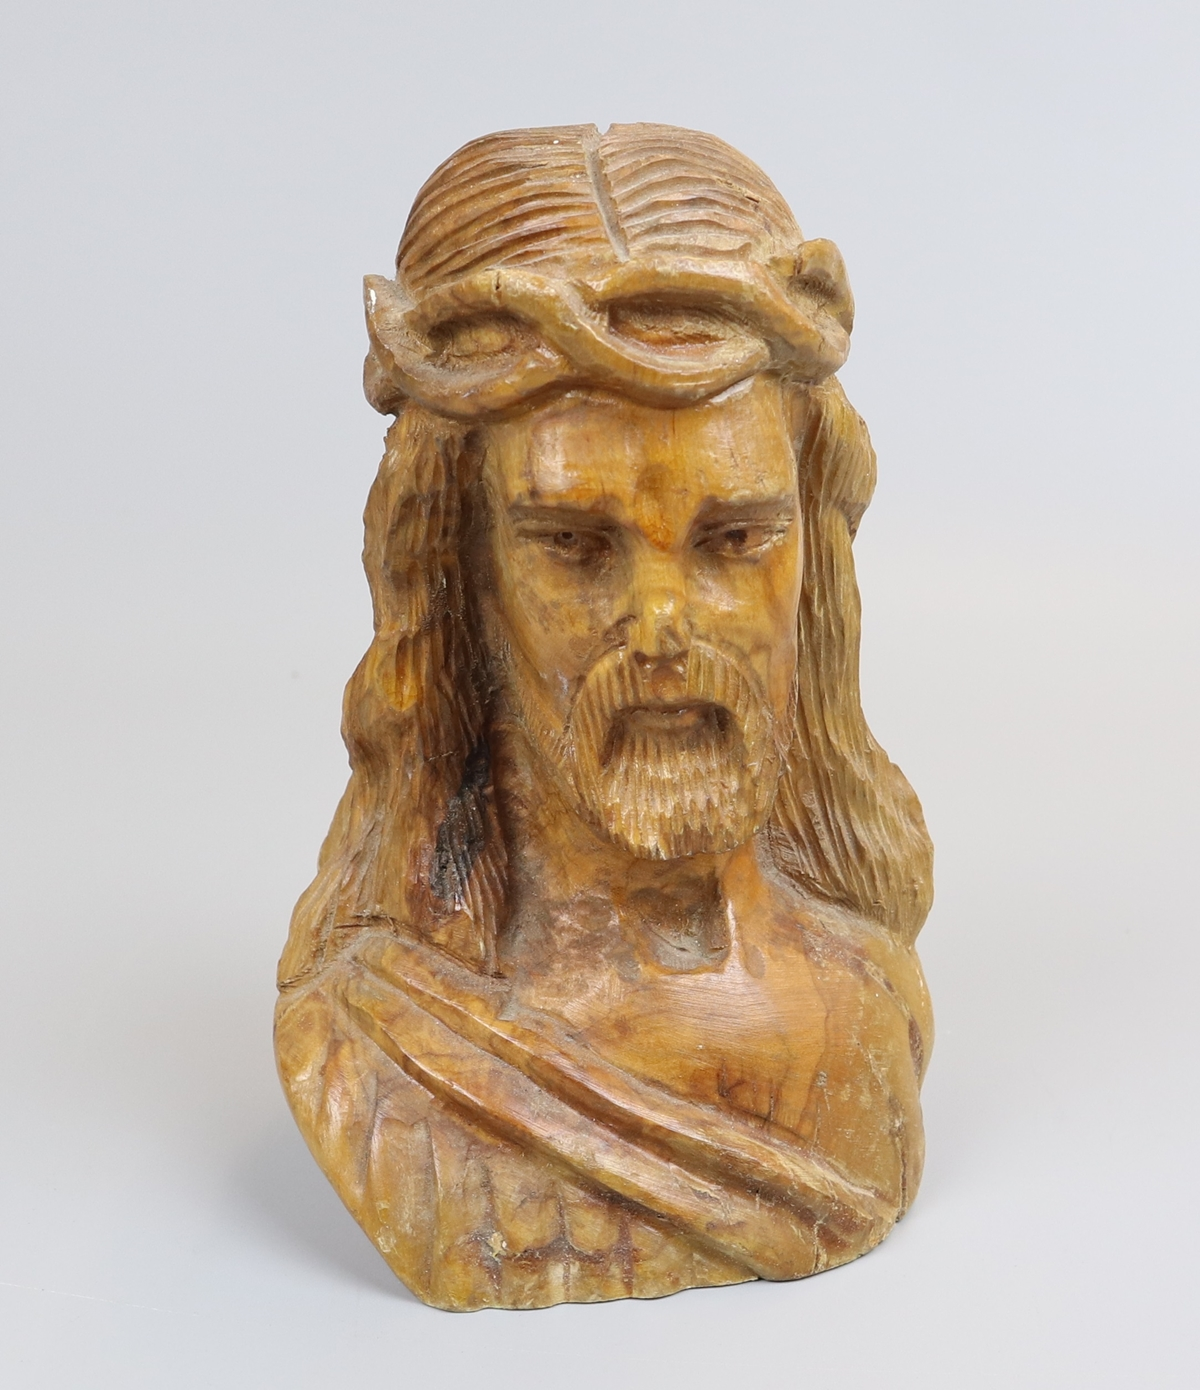 Wooden carving - Jesus Christ - Approx H: 16cm